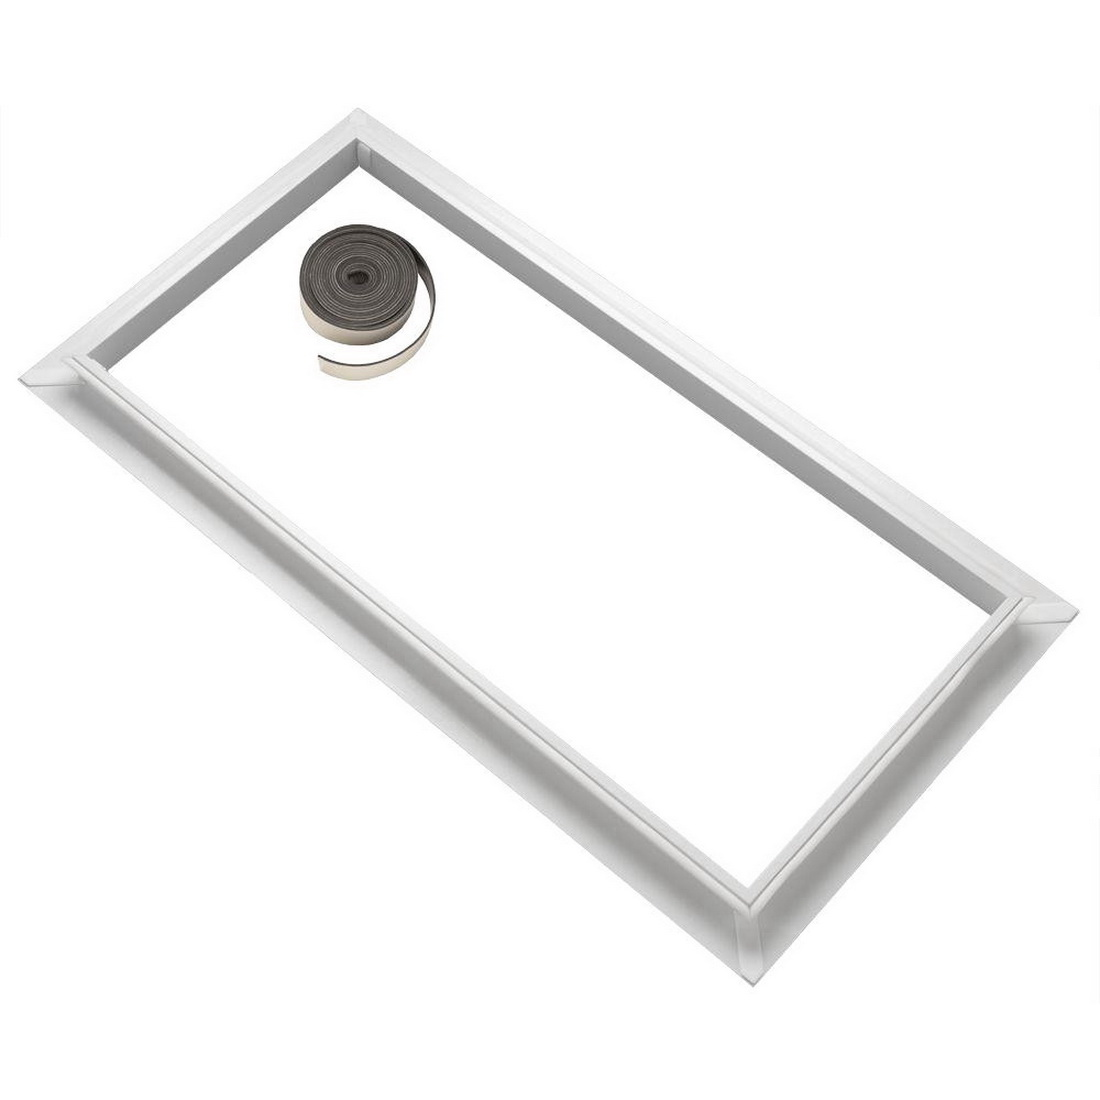 Velux Skylight Accessory Tray To Fit Blind to FCM White ZZZ 199 2222